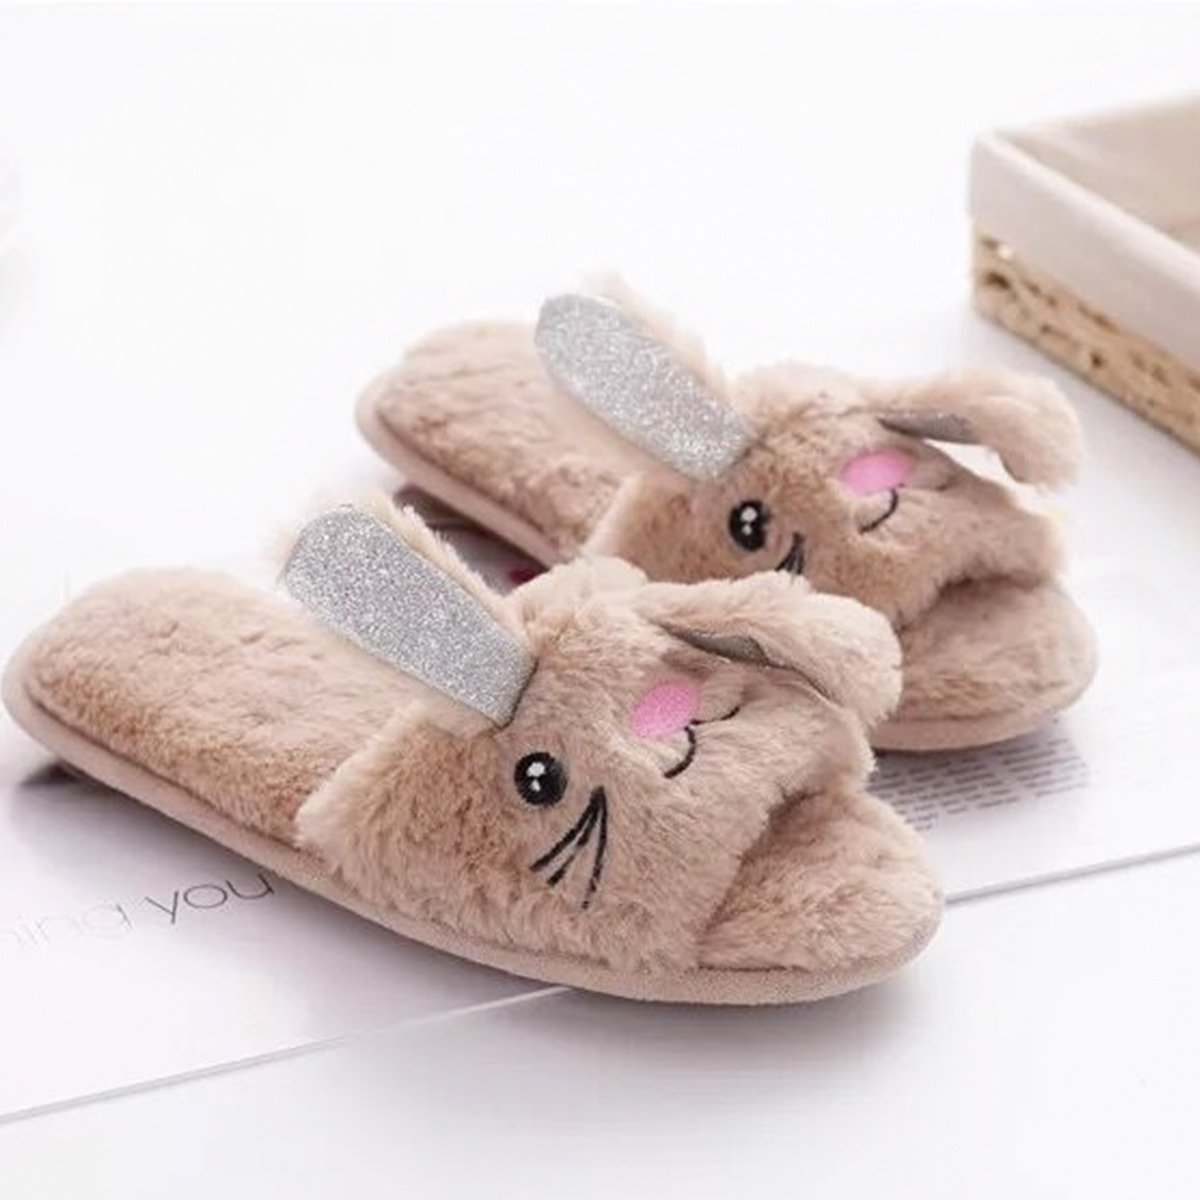 Womens Open Toe Slippers | Cute Bunny Unicorn Animal Slipper | Soft Fleece Memory Foam Clog | Anti-Slip Sole Indoor Outdoor Shoes | Flip Flop Spa Slippers (9-10, BrownBunny) by Caramella Bubble (Image #7)